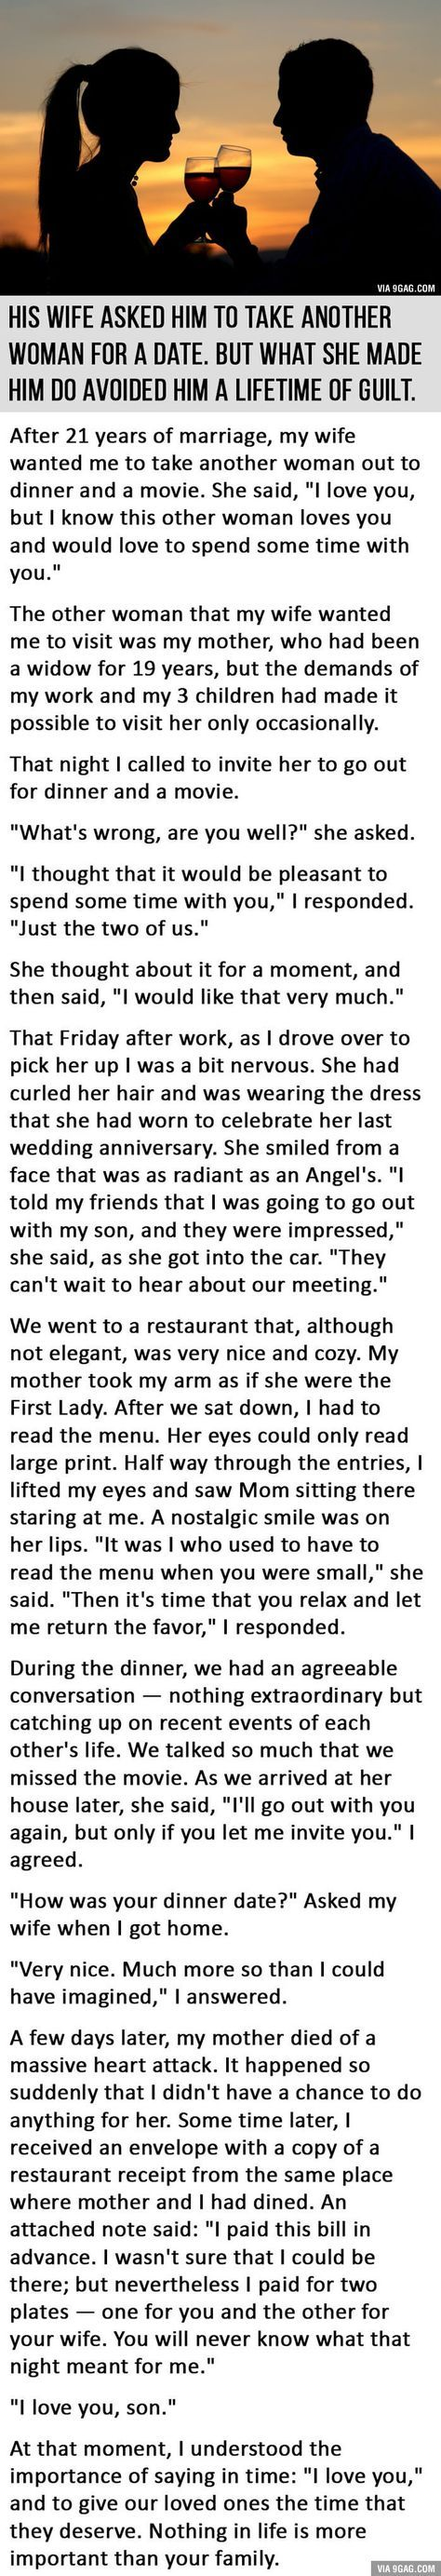 His Date with Another Woman Avoided Him a Lifetime of Guilt